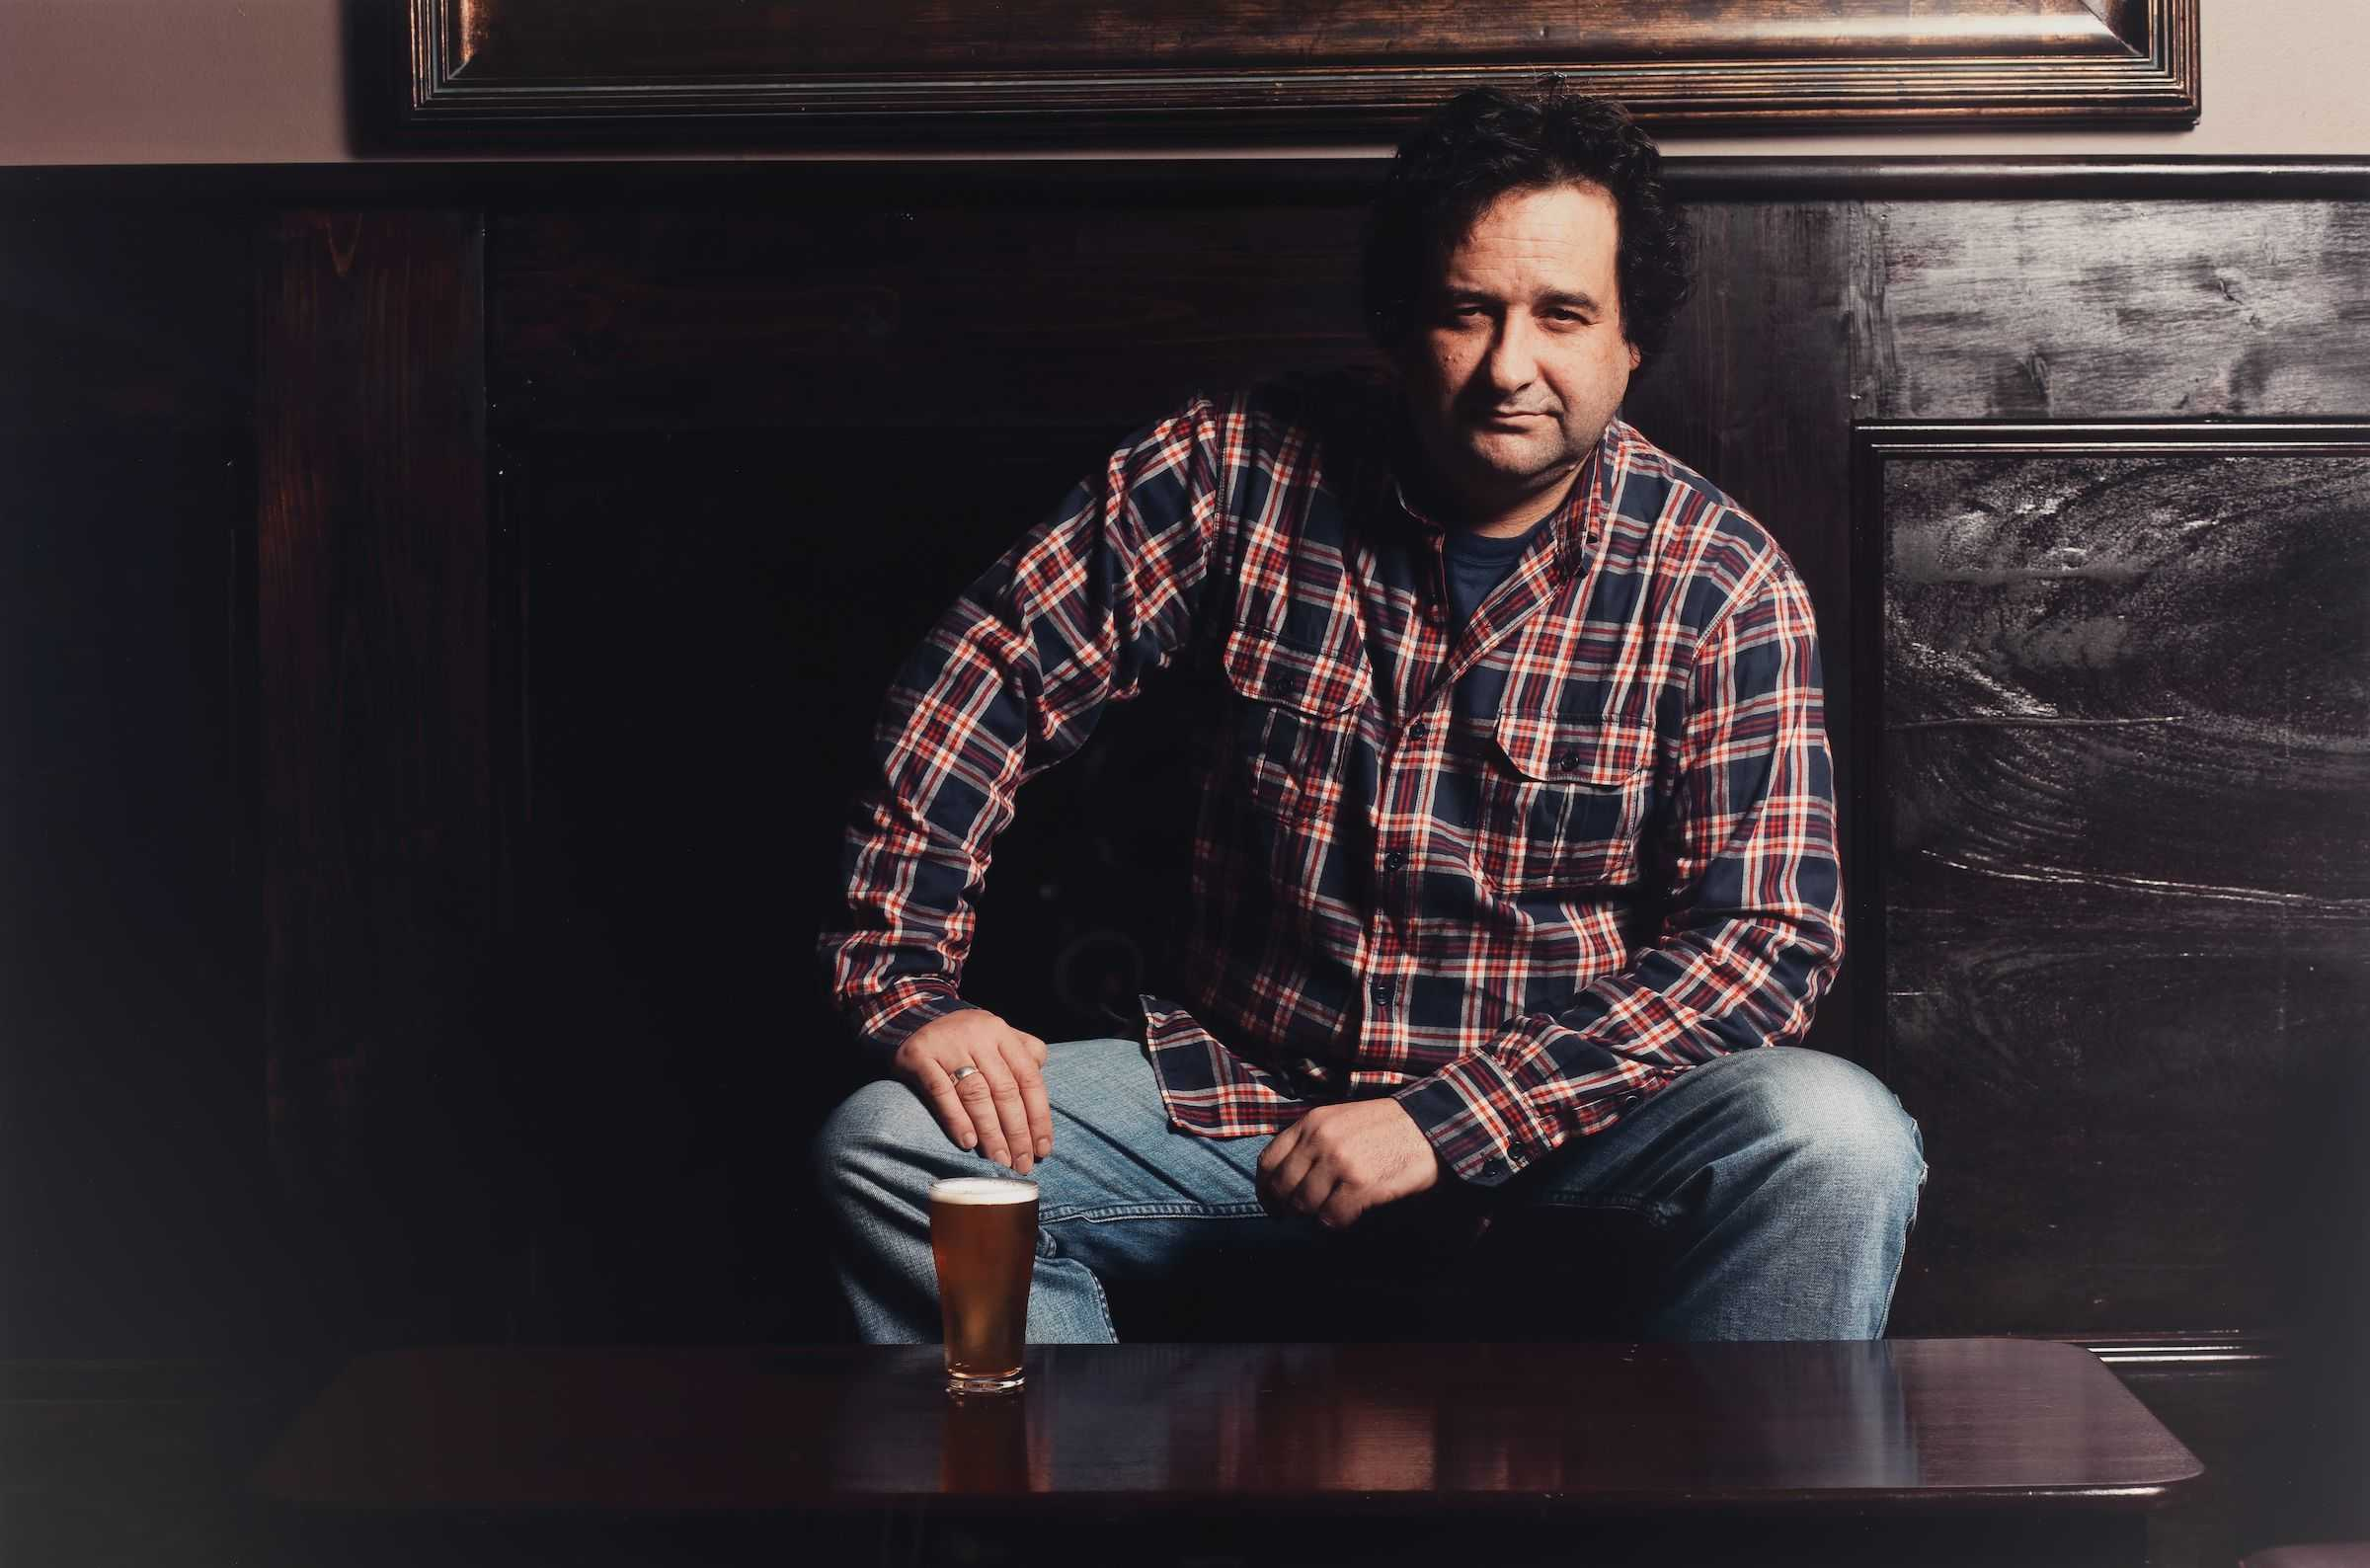 Mick Molloy, 2009 by Andrew Maccoll